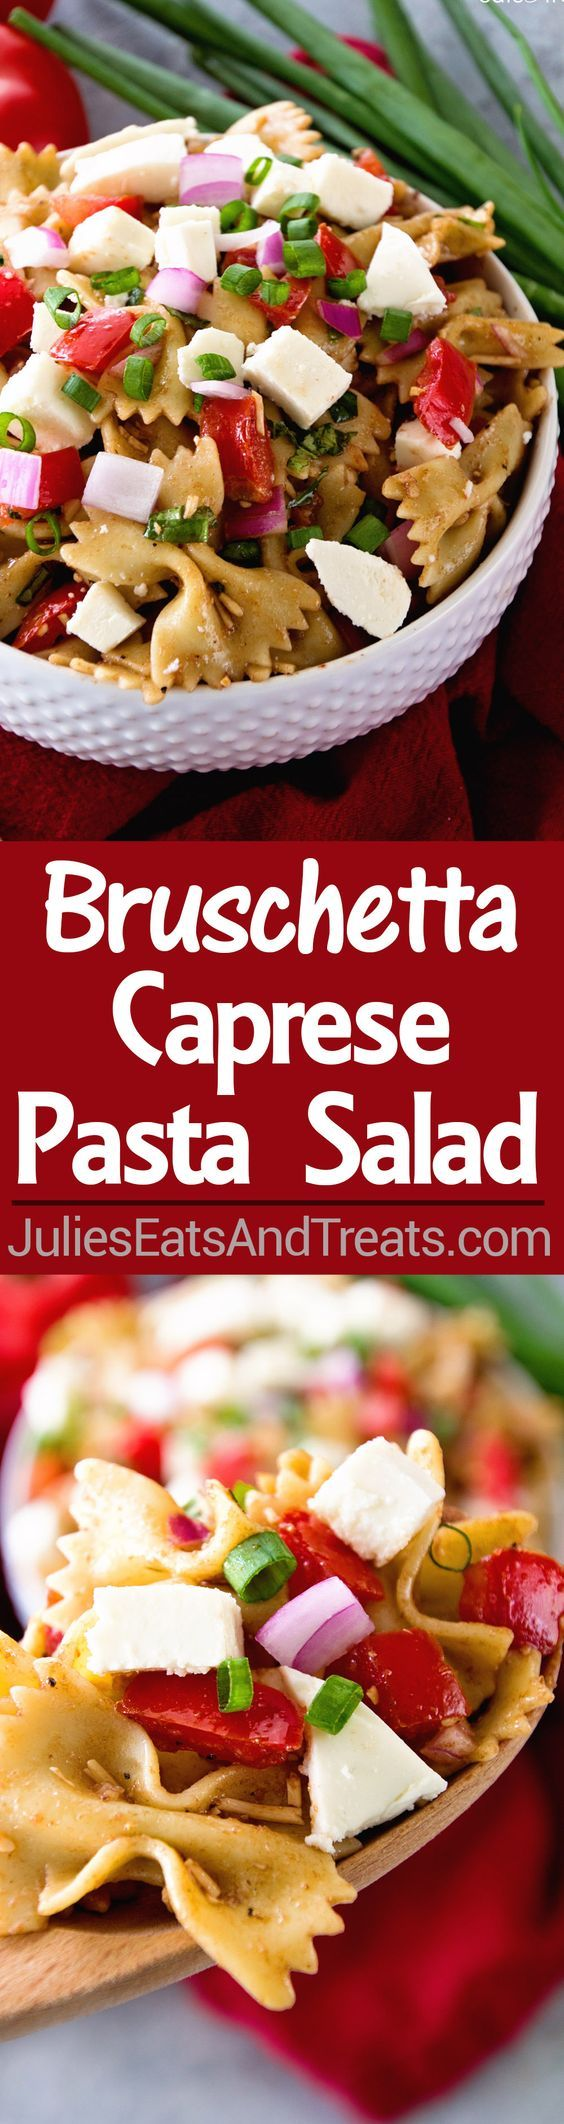 Bruschetta Caprese Pasta Salad Recipe ~ Two of You Favorites Come Together In this Delicious Pasta Salad Loaded with Tomatoes, Red Onions, Fresh Mozzarella in a Tangy Balsamic Dressing! Perfect Side Dish for Grilling and Summer Cook Outs! #BushelBoyTomatoes